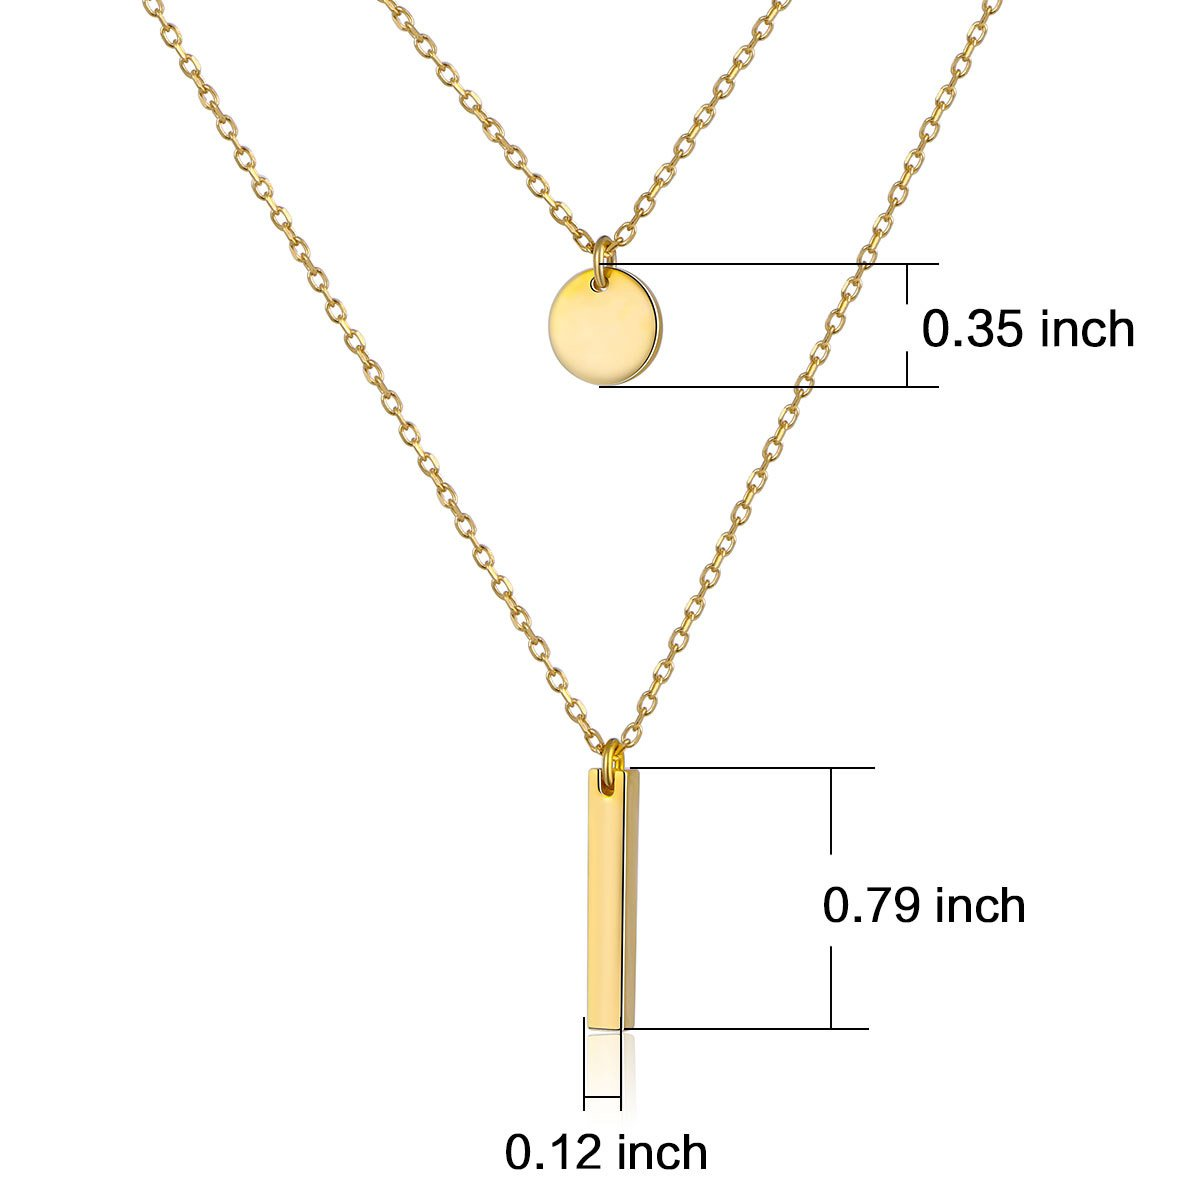 925S Sterling Silver Bar Dot Double Layered Long Chain Choker Y Necklace Women Lady Golden by SILVER MOUNTAIN (Image #5)